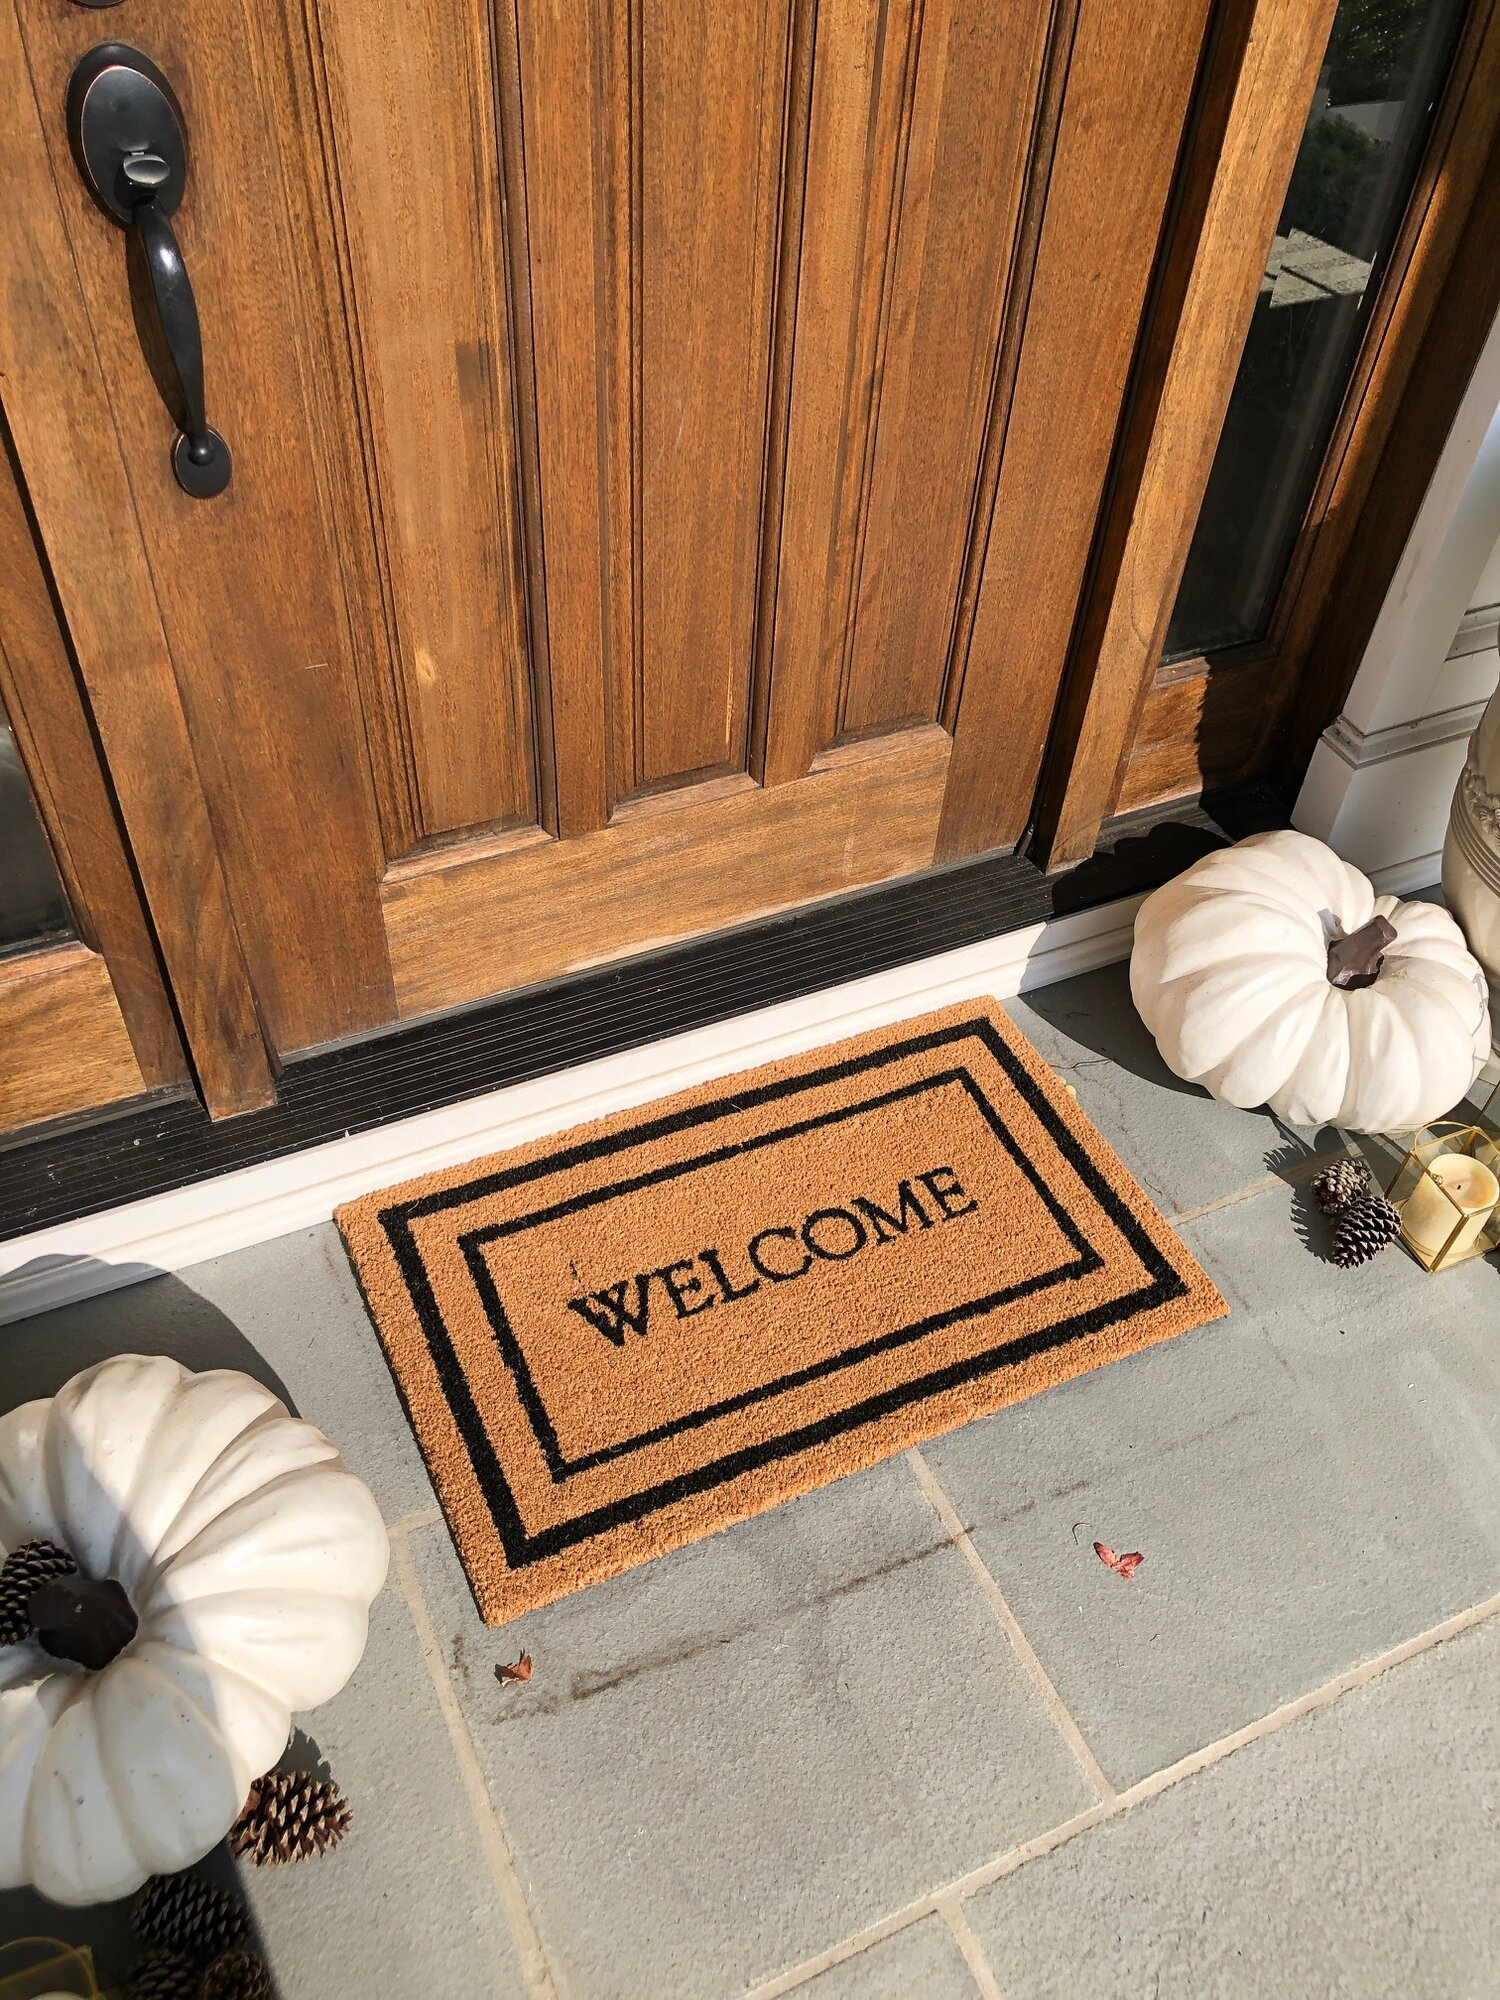 Our new welcome mat fits perfectly.